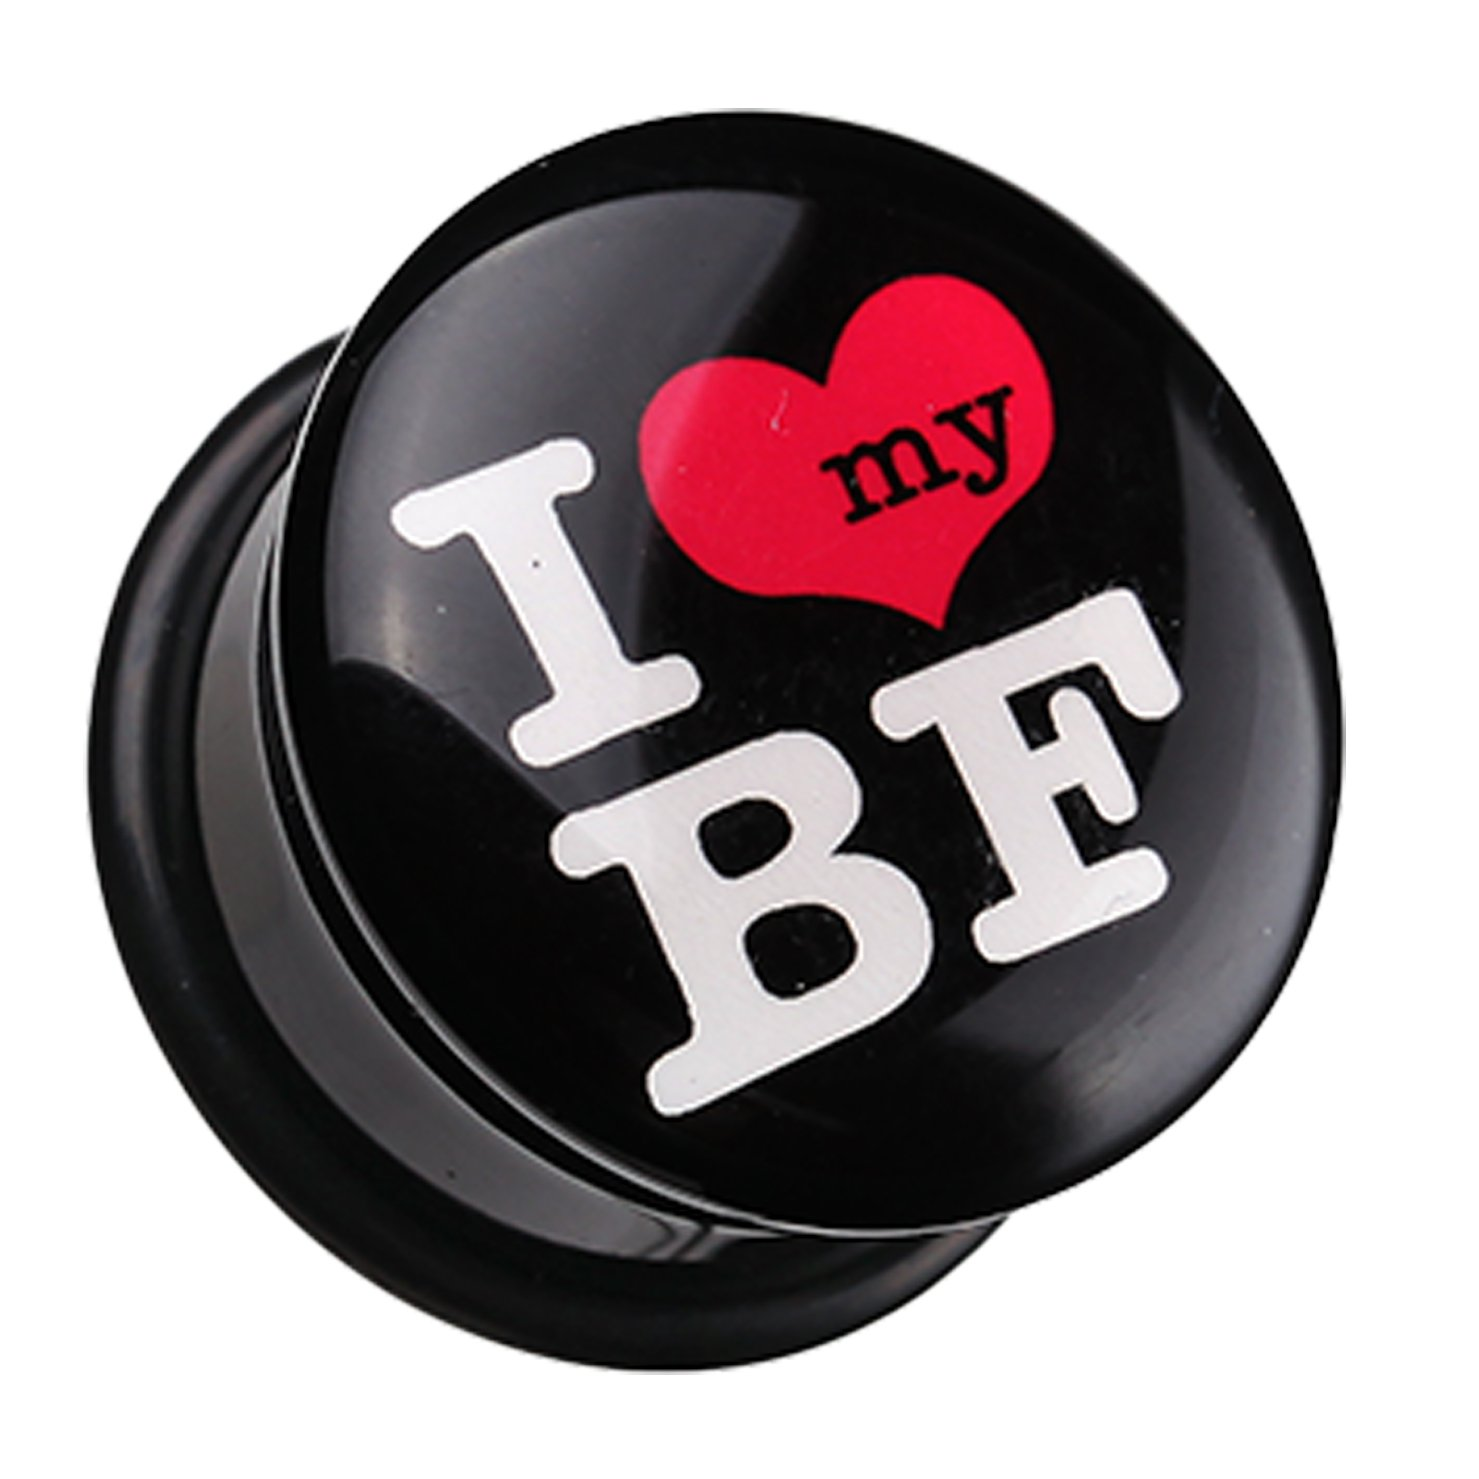 I Heart my BF Single Flared Ear Gauge Plug Sold as a Pair